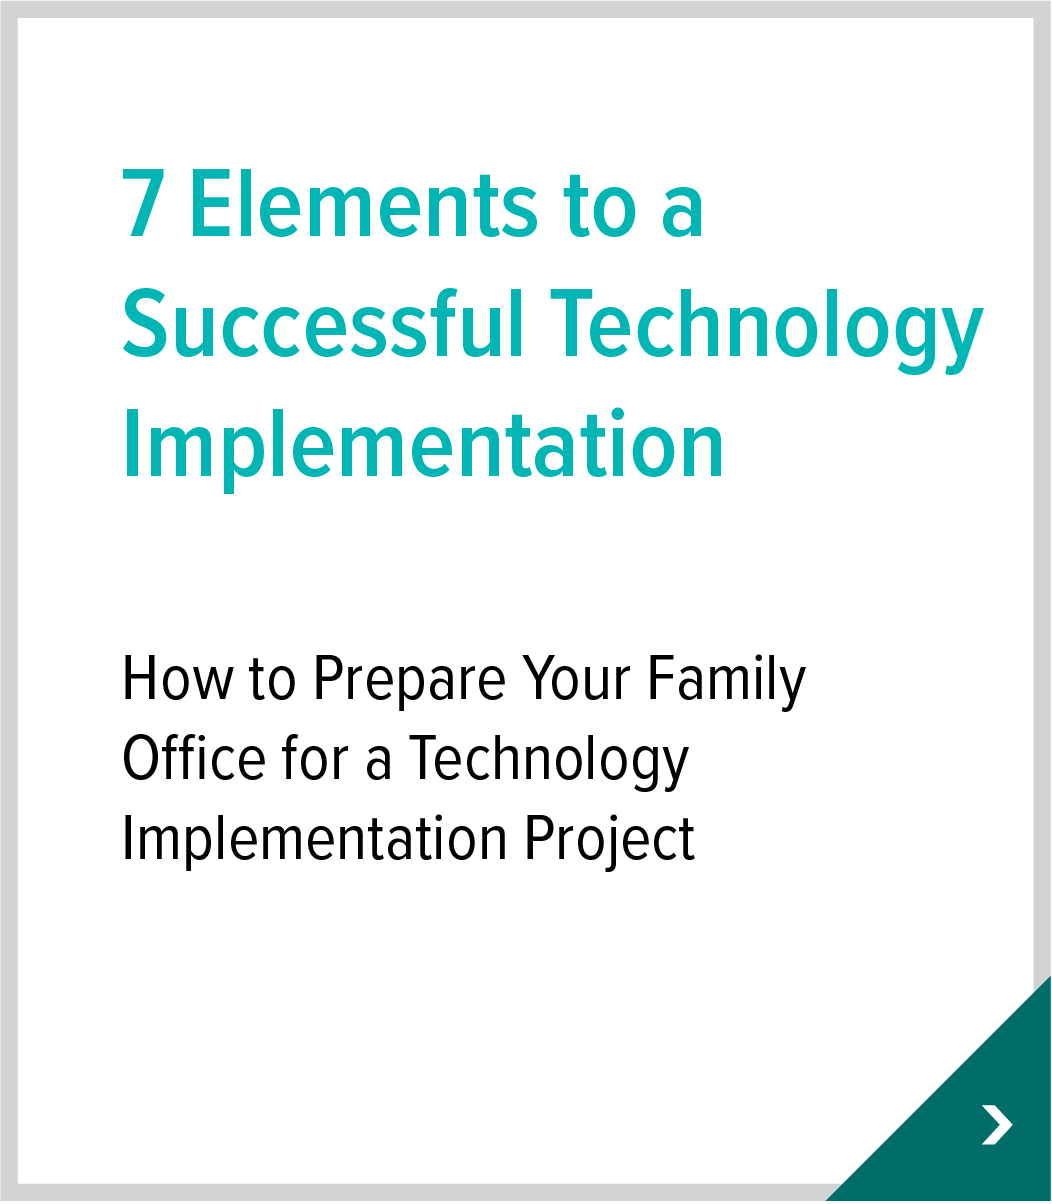 7 Elements to a Successful Technology Implementation